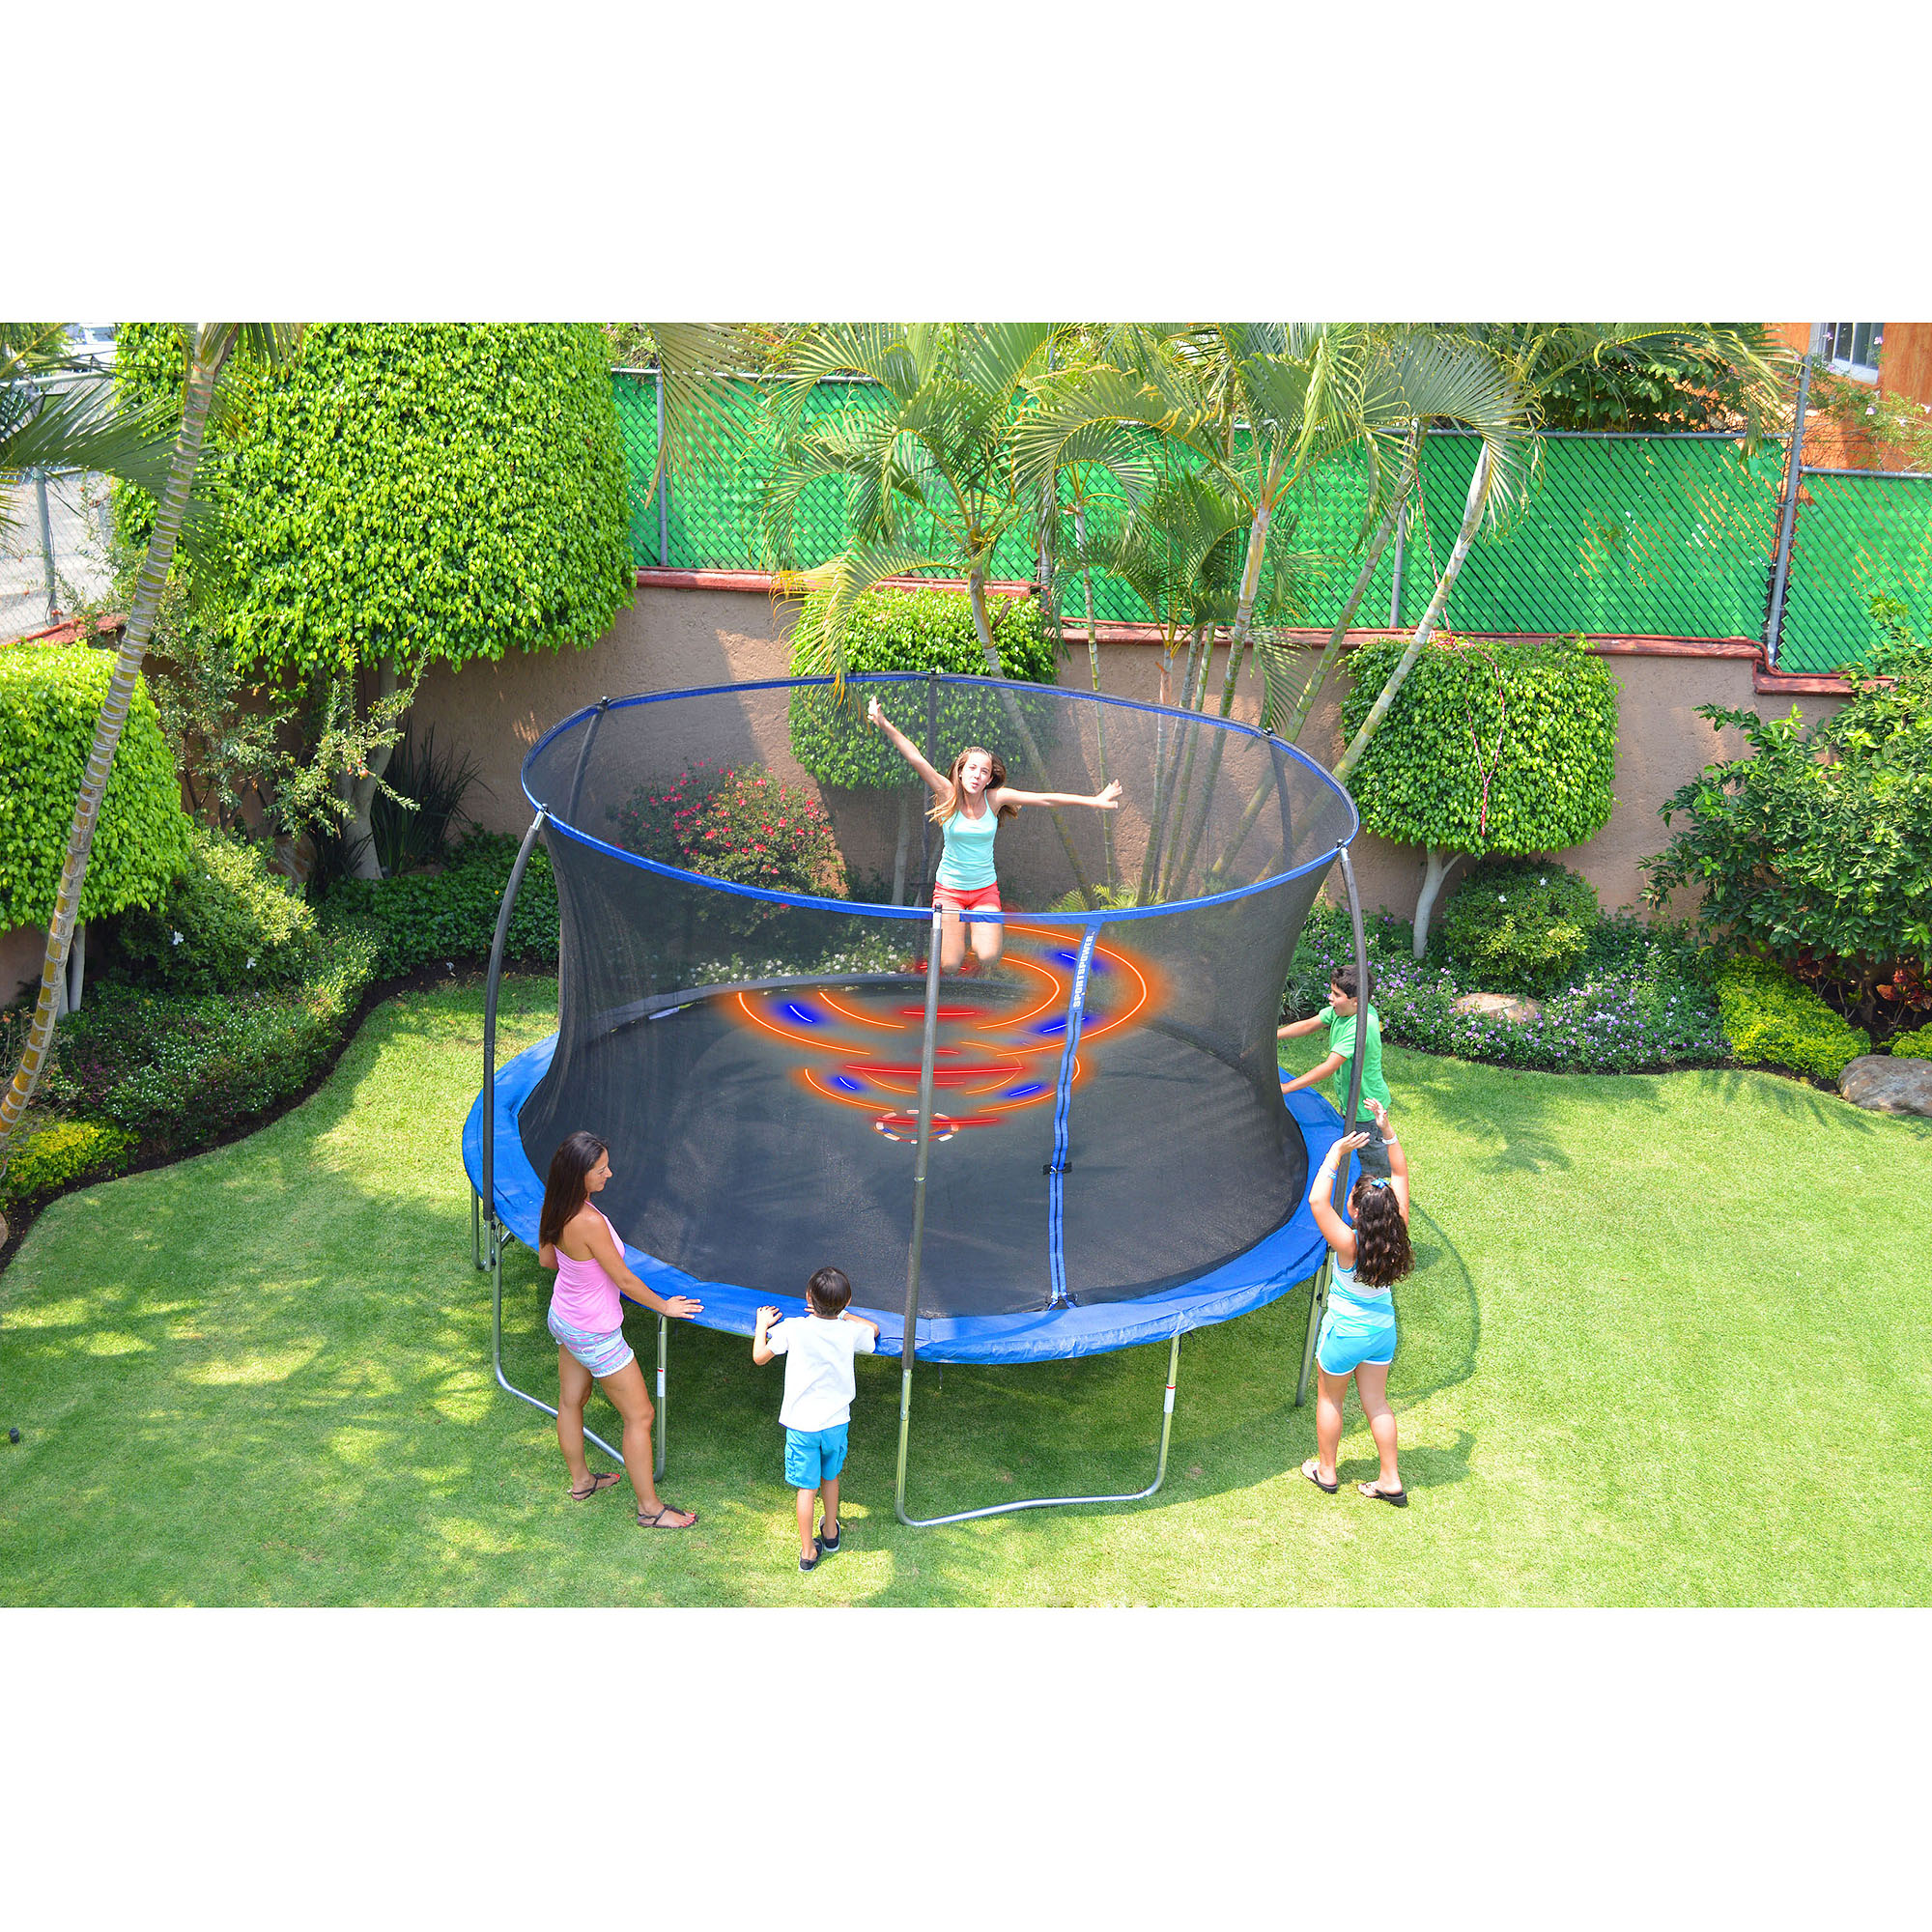 bouncepro 14 u0027 trampoline with spinner flash light zone blue box